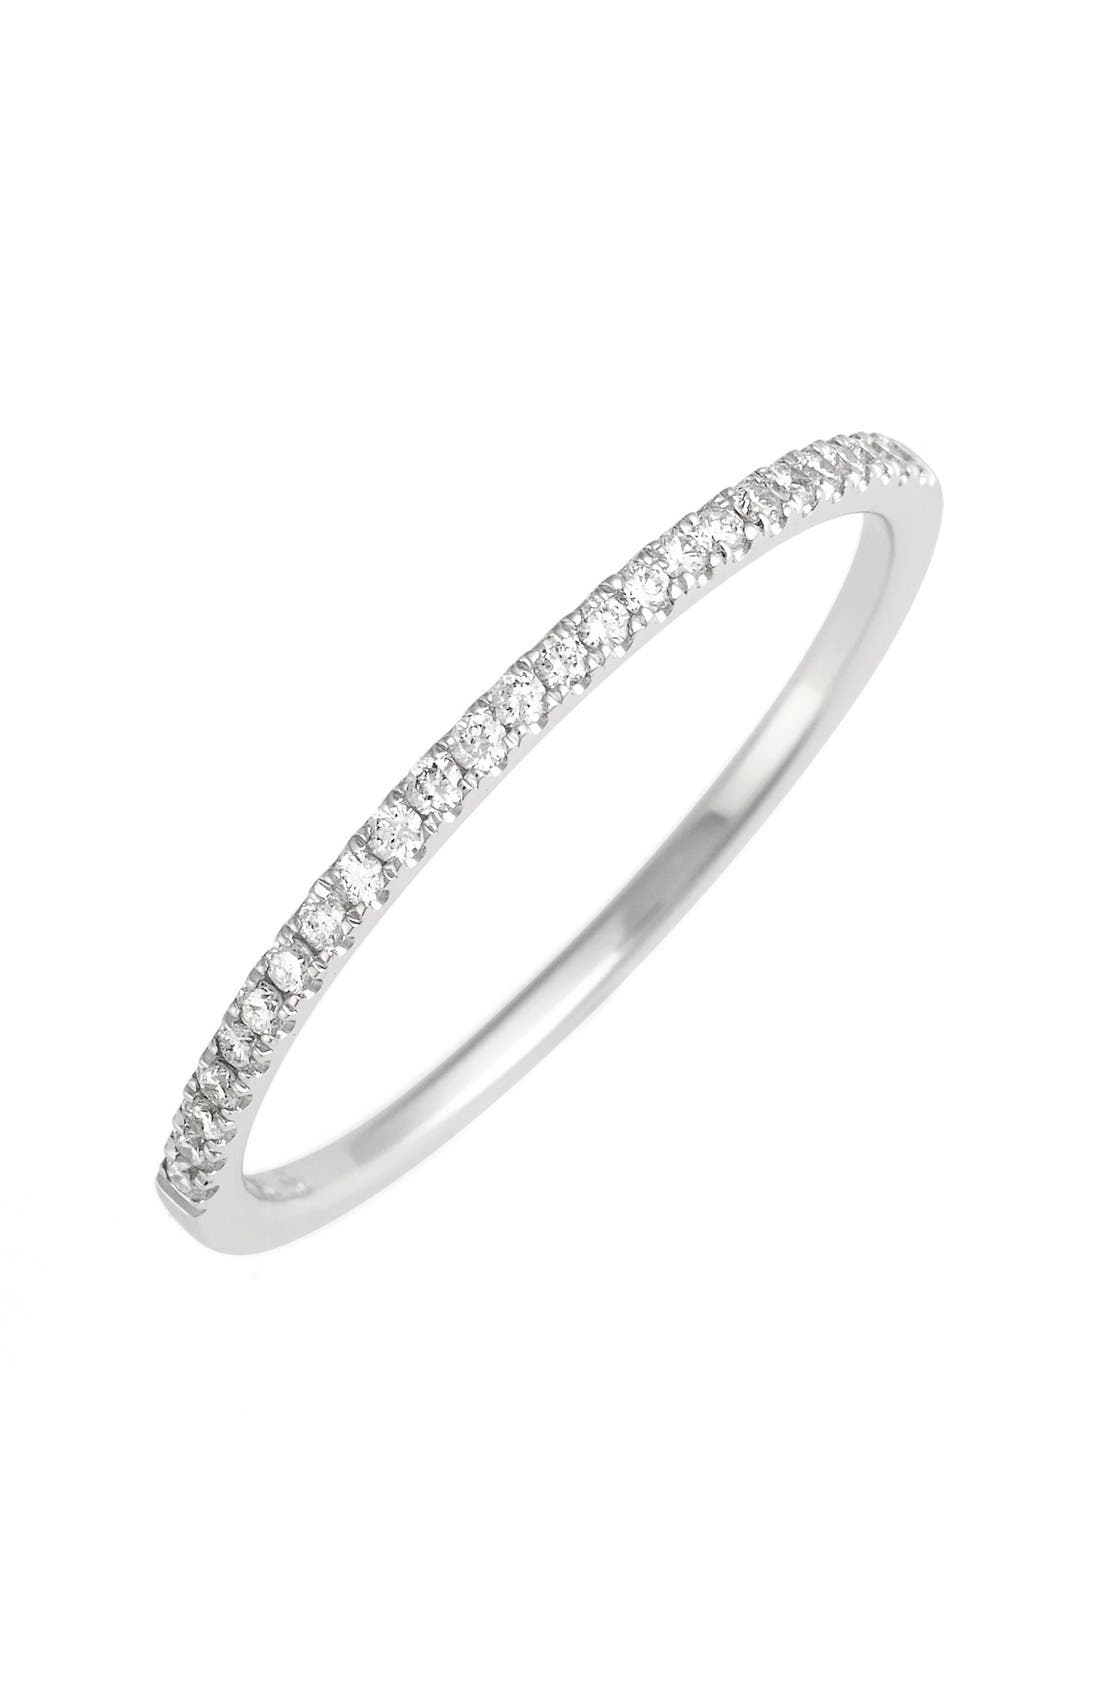 'Stackable' Straight Diamond Band Ring,                         Main,                         color, White Gold